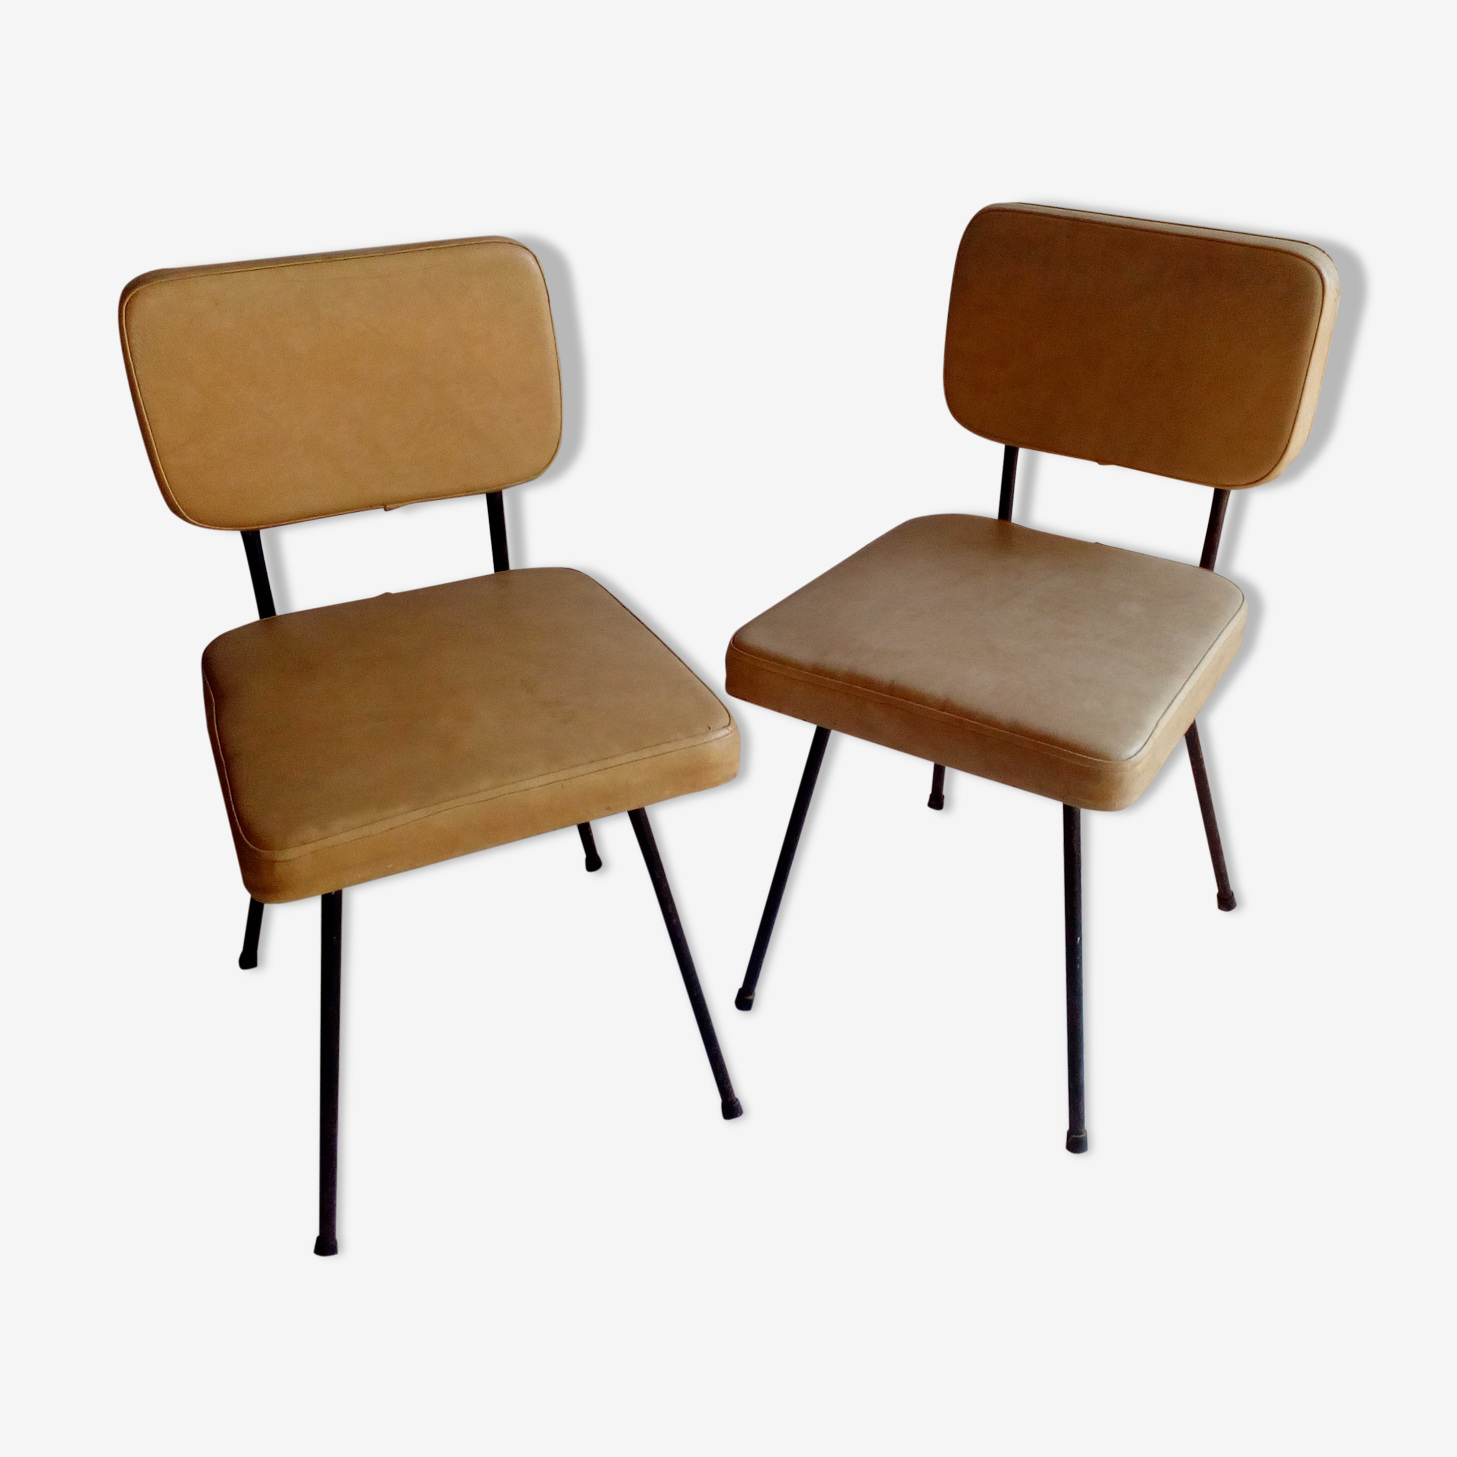 Set of 2 chairs airborne